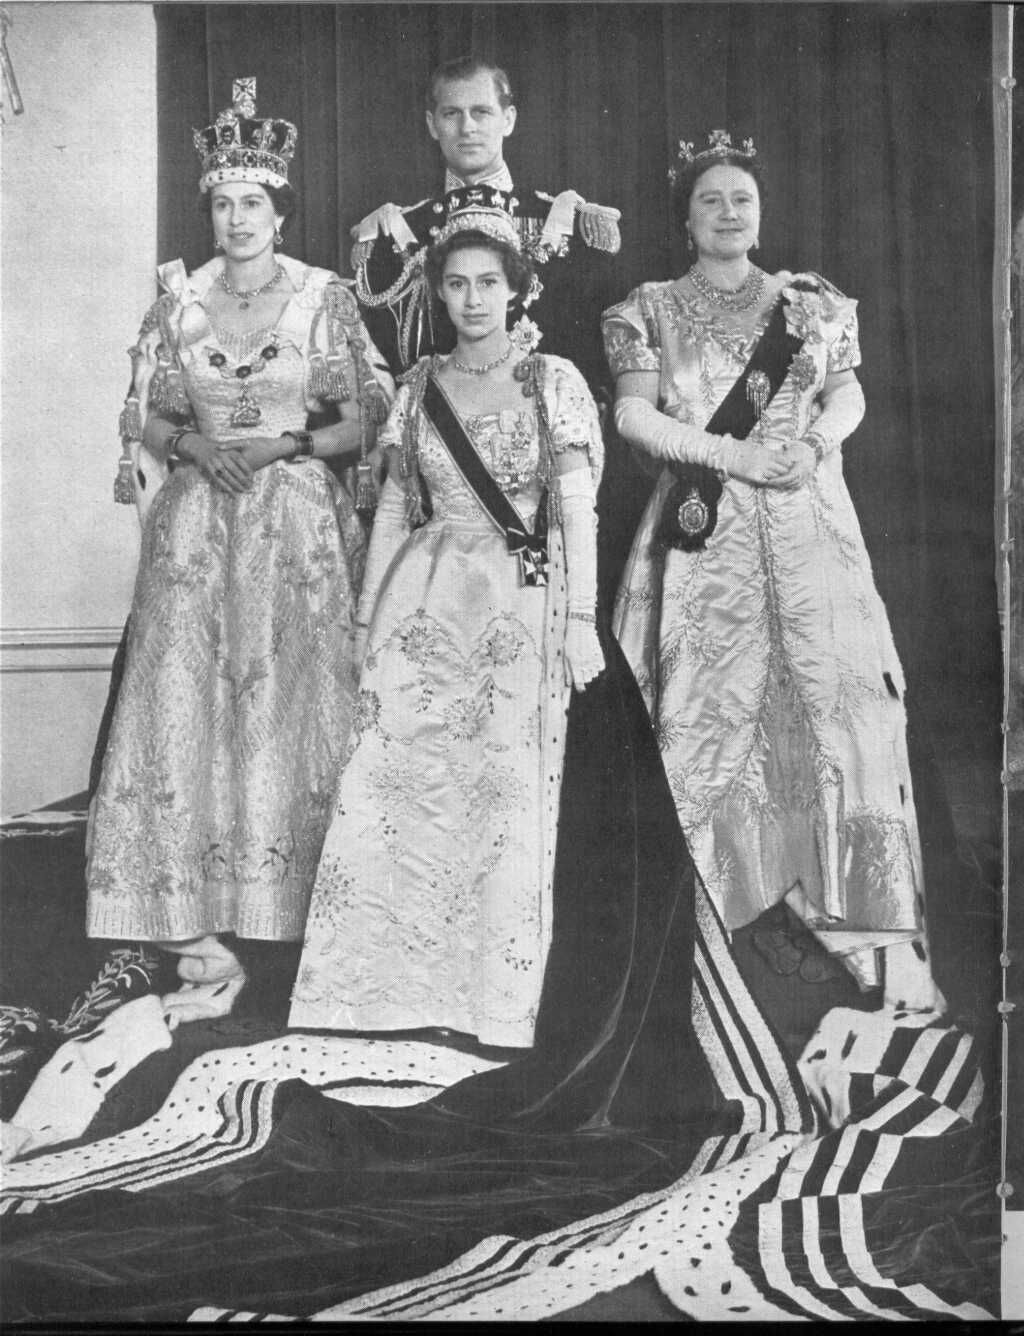 The Royal Family on the Coronation day of Queen Elizabeth